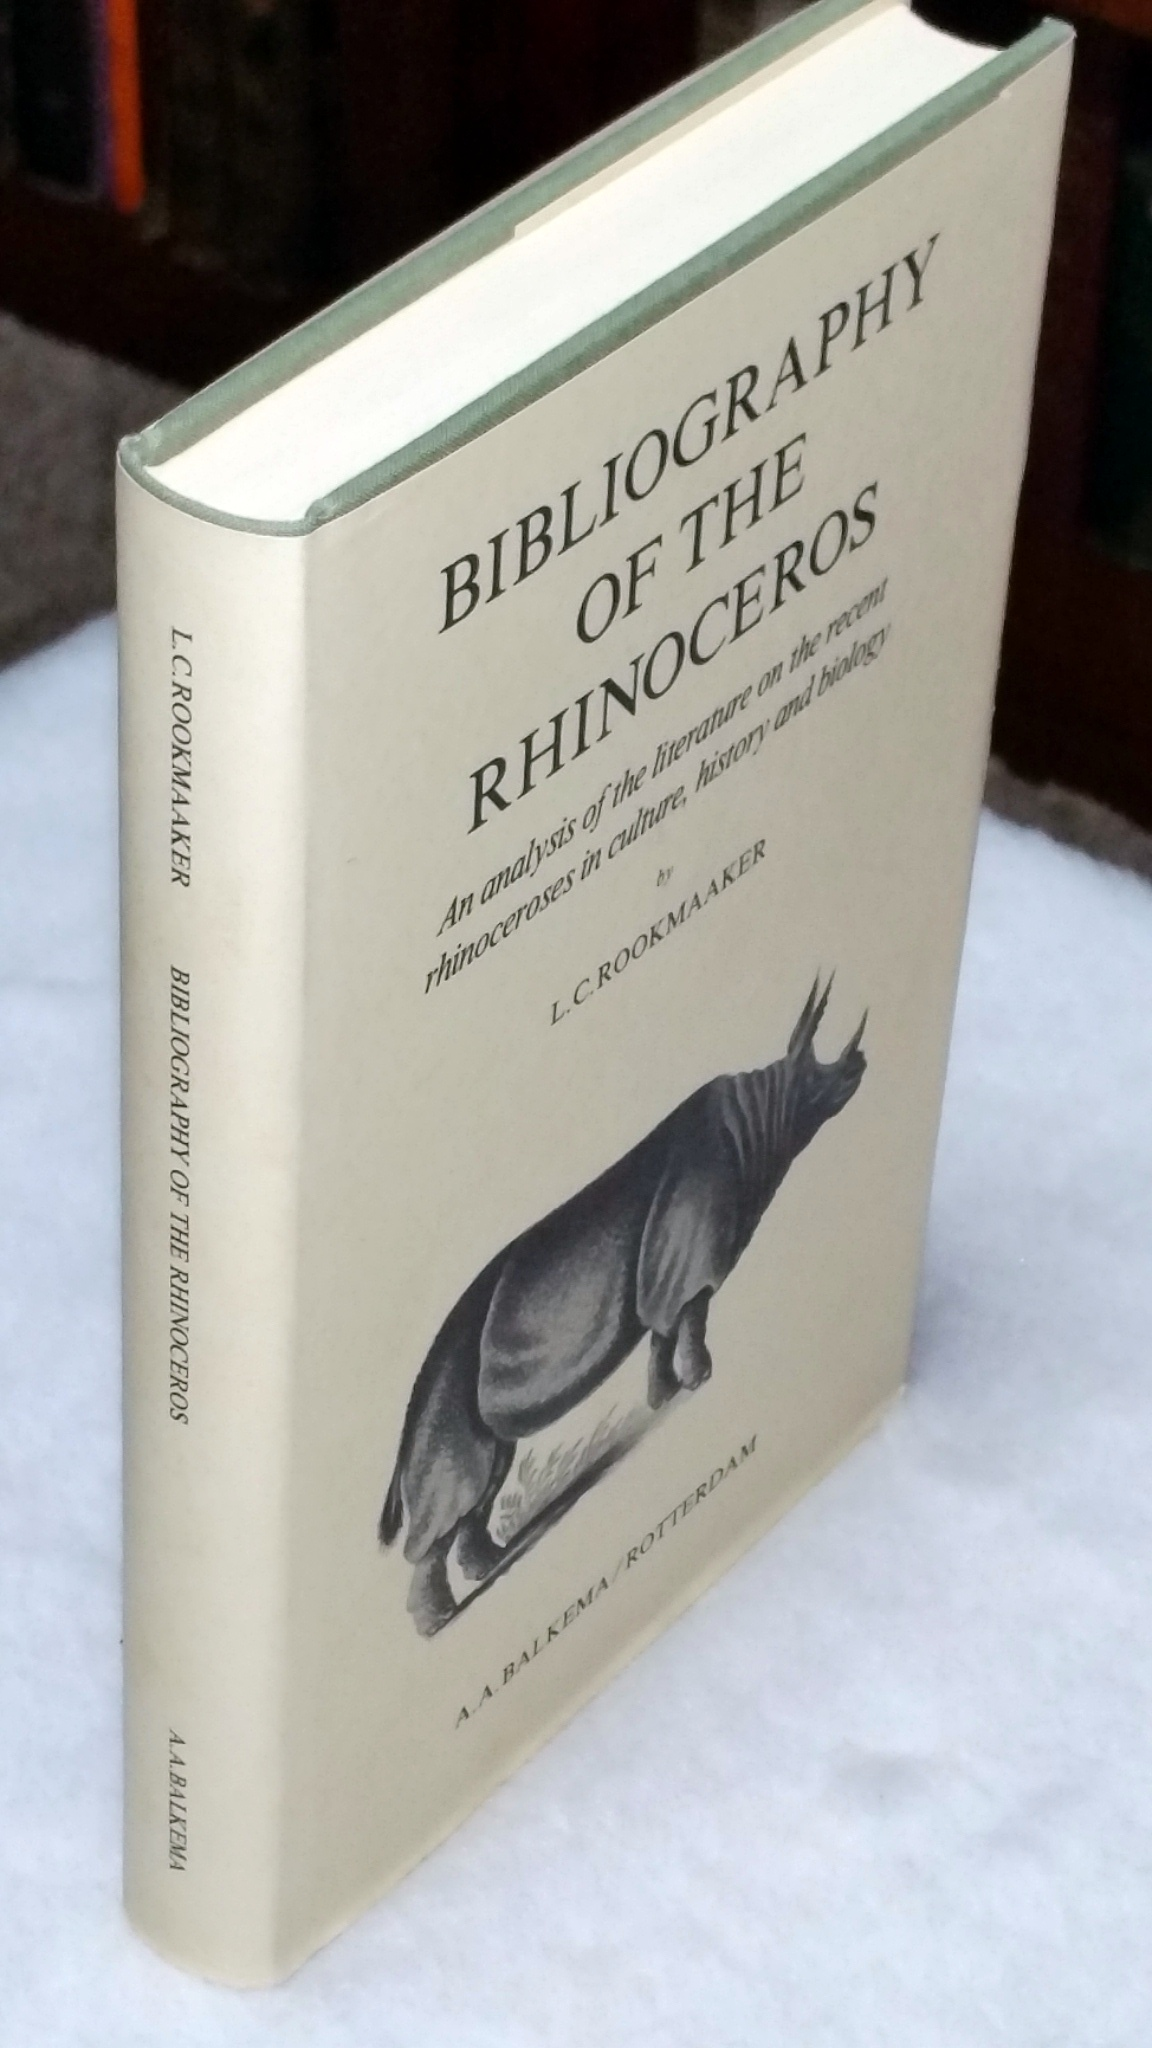 Image for Bibliography of the Rhinoceros:  An Analysis of the Literature on the Recent rhinoceroses in Culture, History and Biology